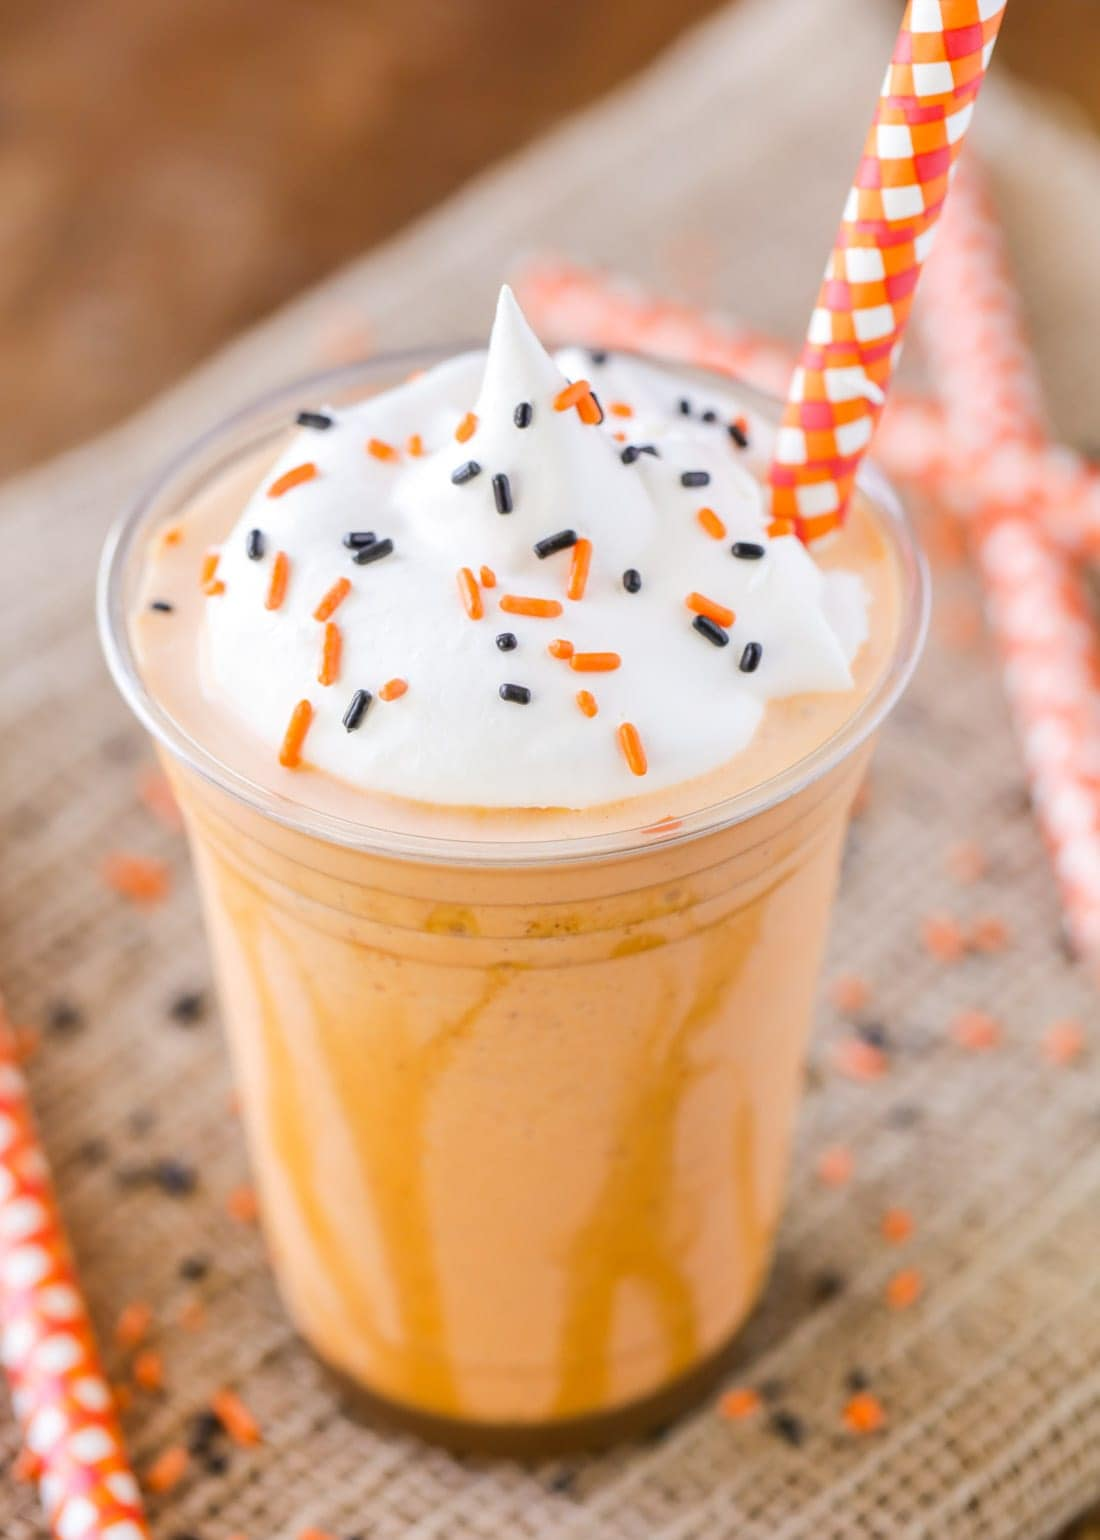 Pumpkin Milkshake recipe in cup with whipped cream and sprinkles